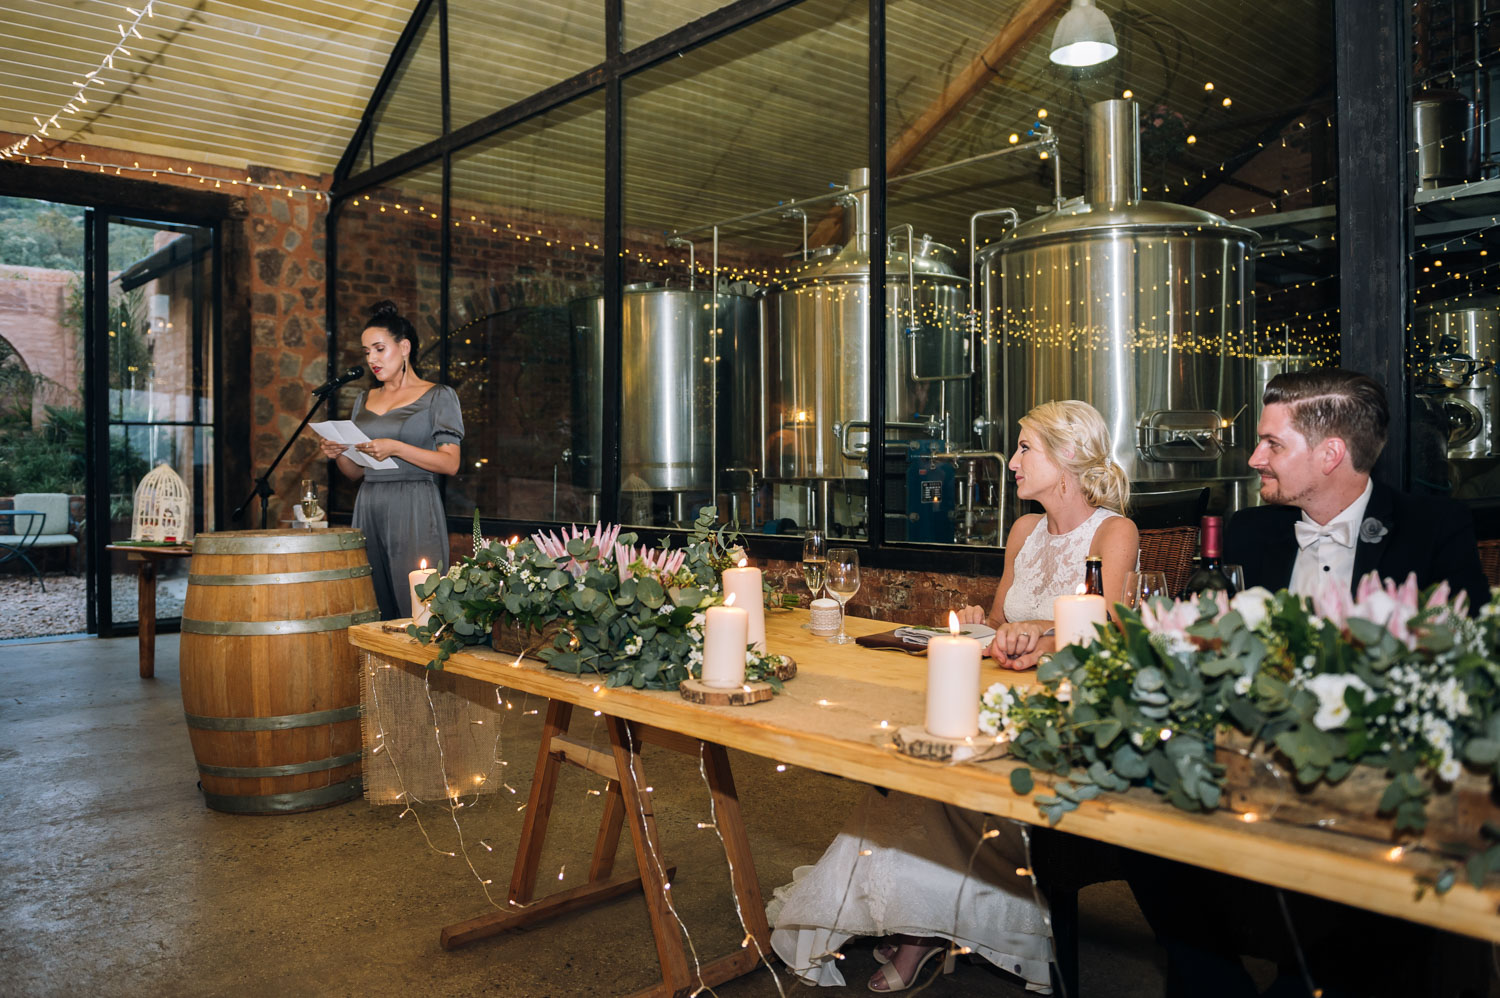 Alistair&Heather_AndStory_BlackHorseBrewery-52